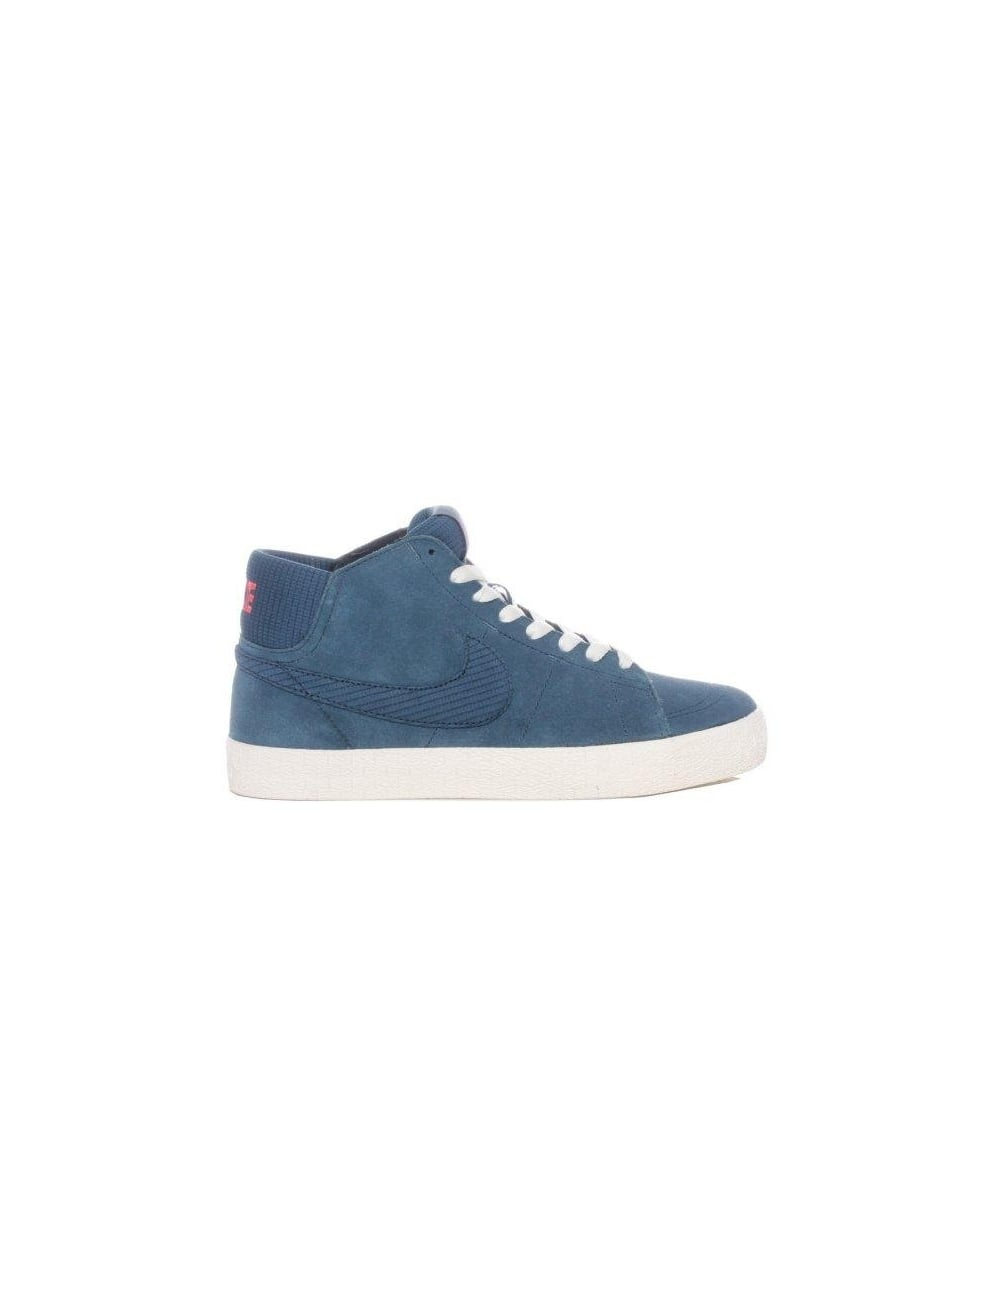 check out 90fcd 4084b Blazer Mid LR - Squadron Blue